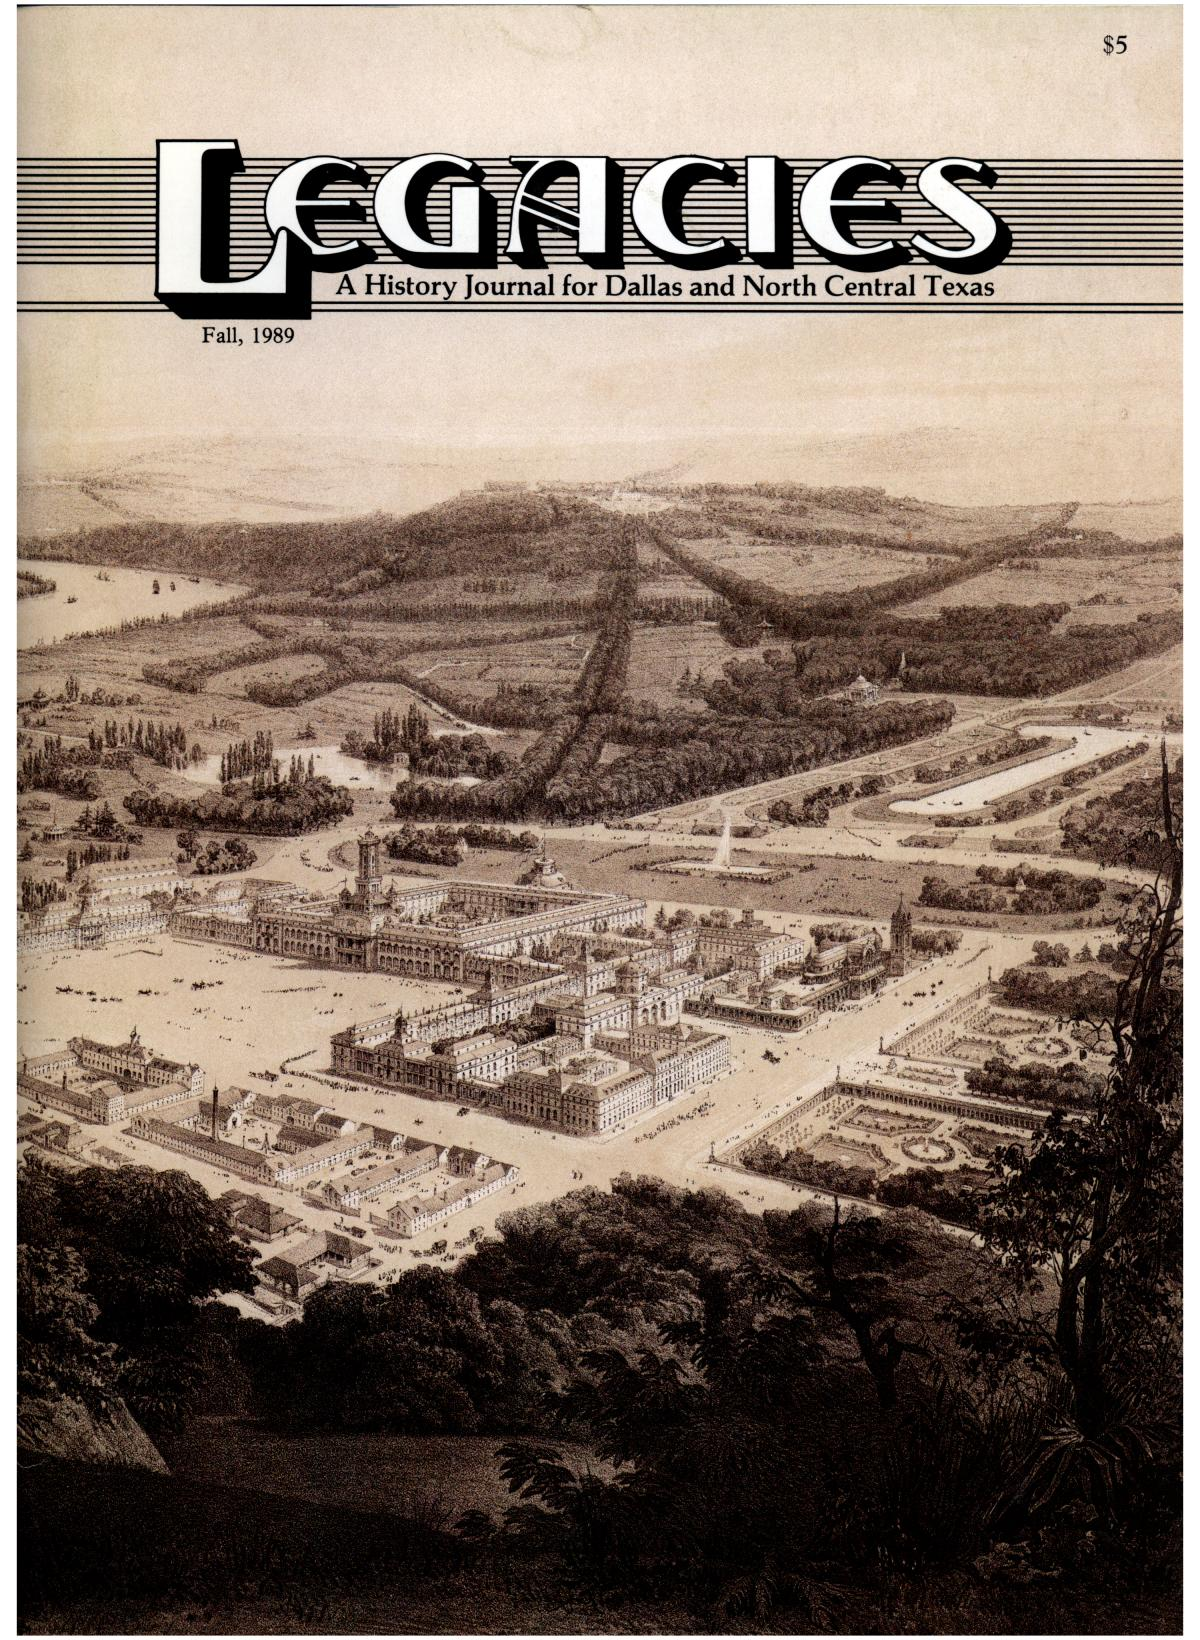 Legacies: A History Journal for Dallas and North Central Texas, Volume 1, Number 2, Fall, 1989                                                                                                      Front Cover